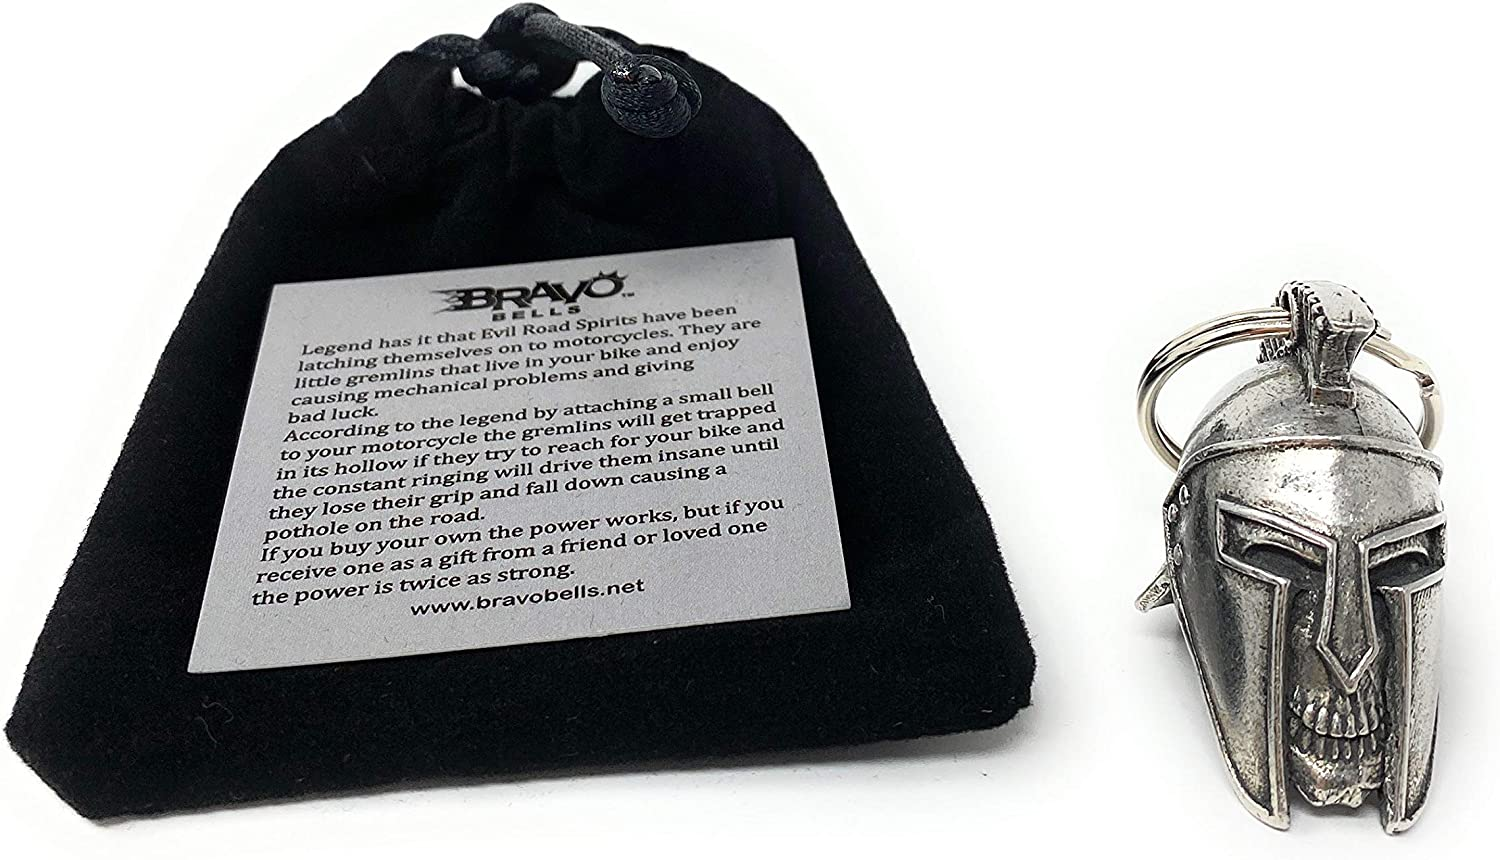 Bravo Bells Spartan Motorcycle Biker Bell Accessory or Key Chain for Luck on The Road